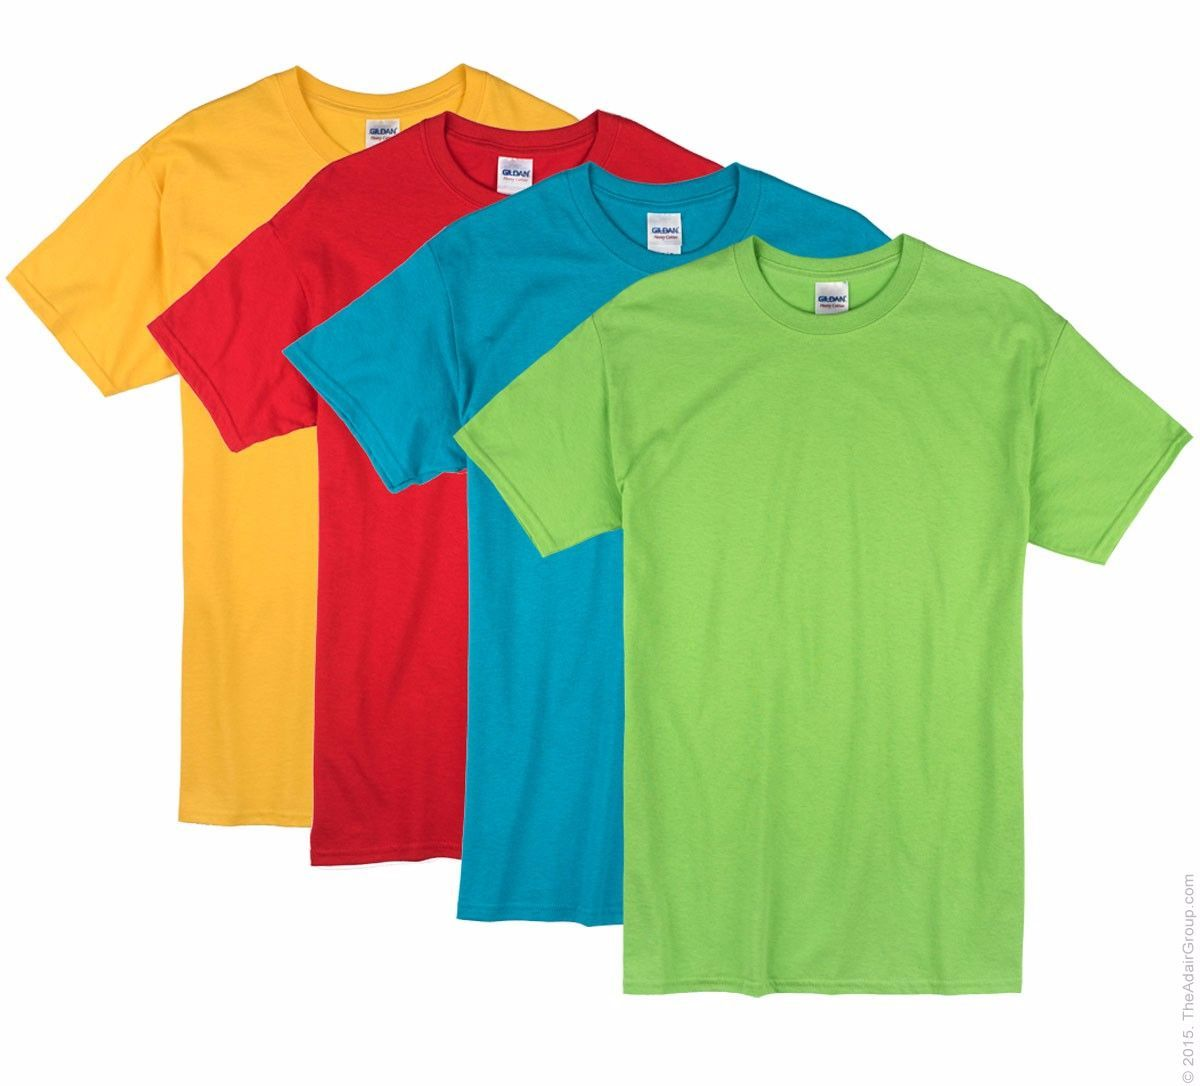 Just Released Powerful T Shirt Research Software Responsible For